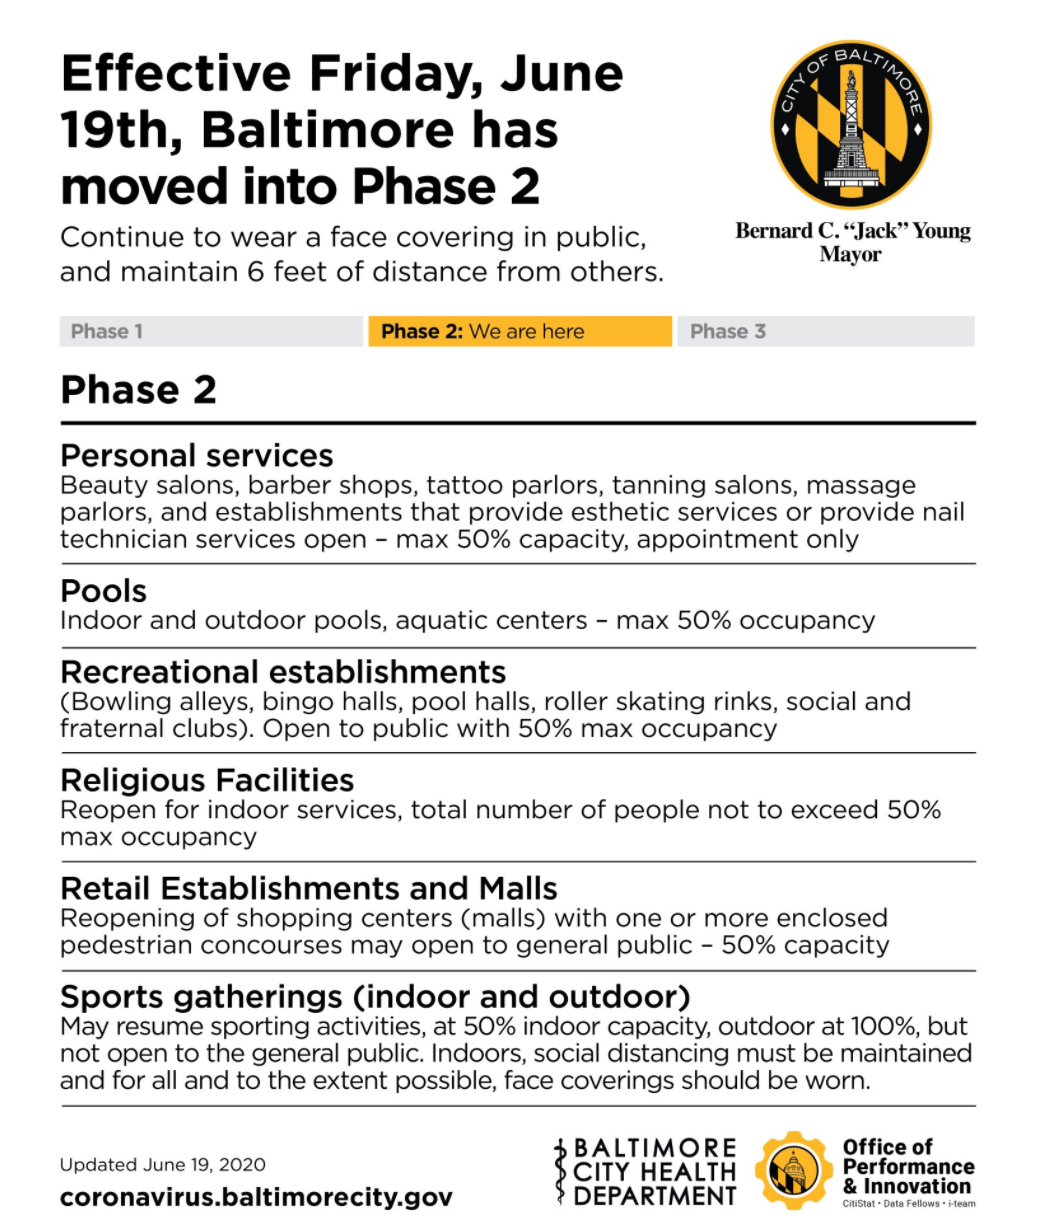 Baltimore Phase 2 continued